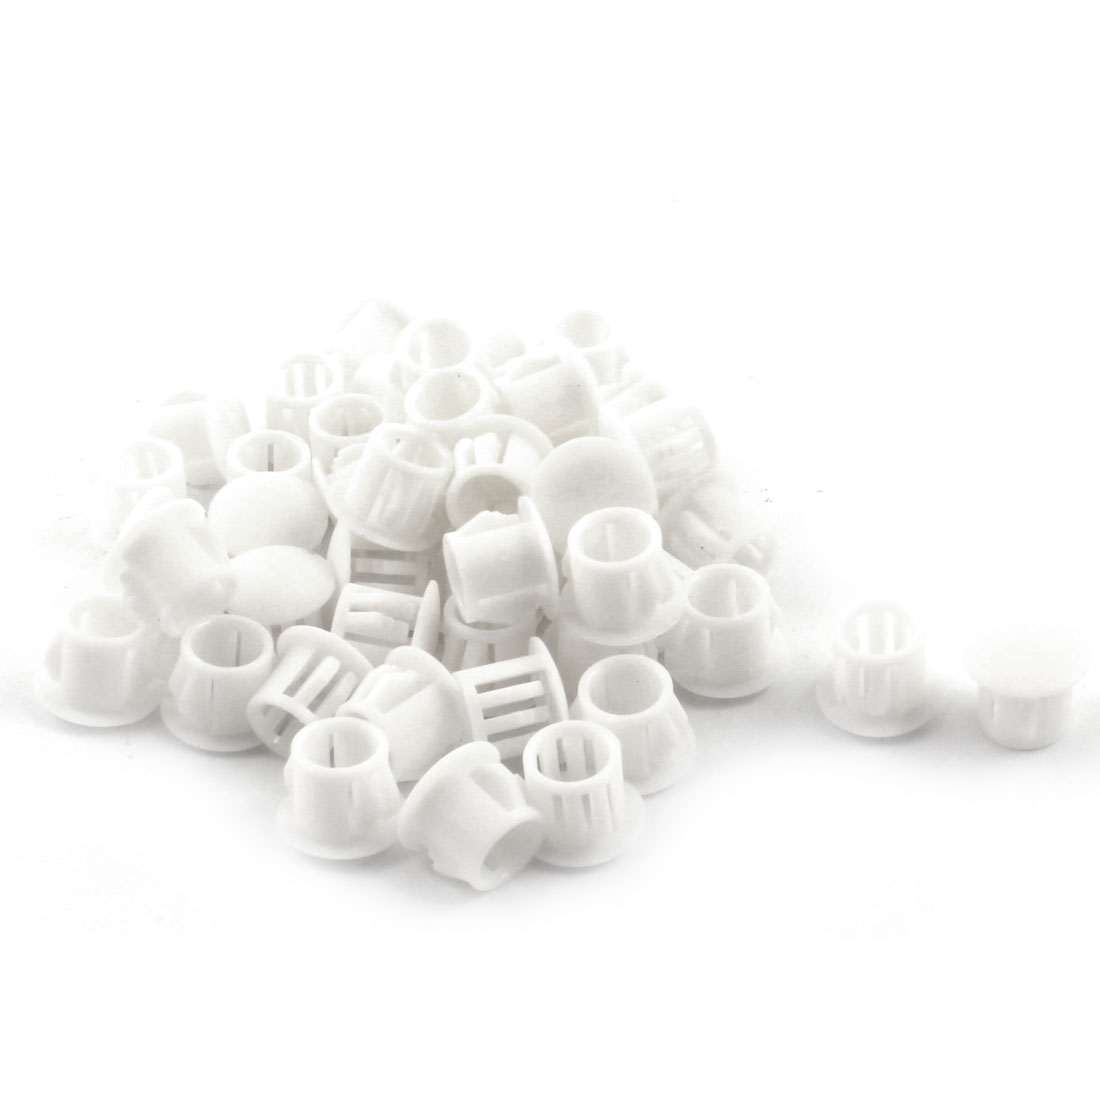 50 Pcs SKT-10 Insulated White Plastic Snap in Mounting Locking Hole Plug Harness Fastener Cover 9.5mm Dia